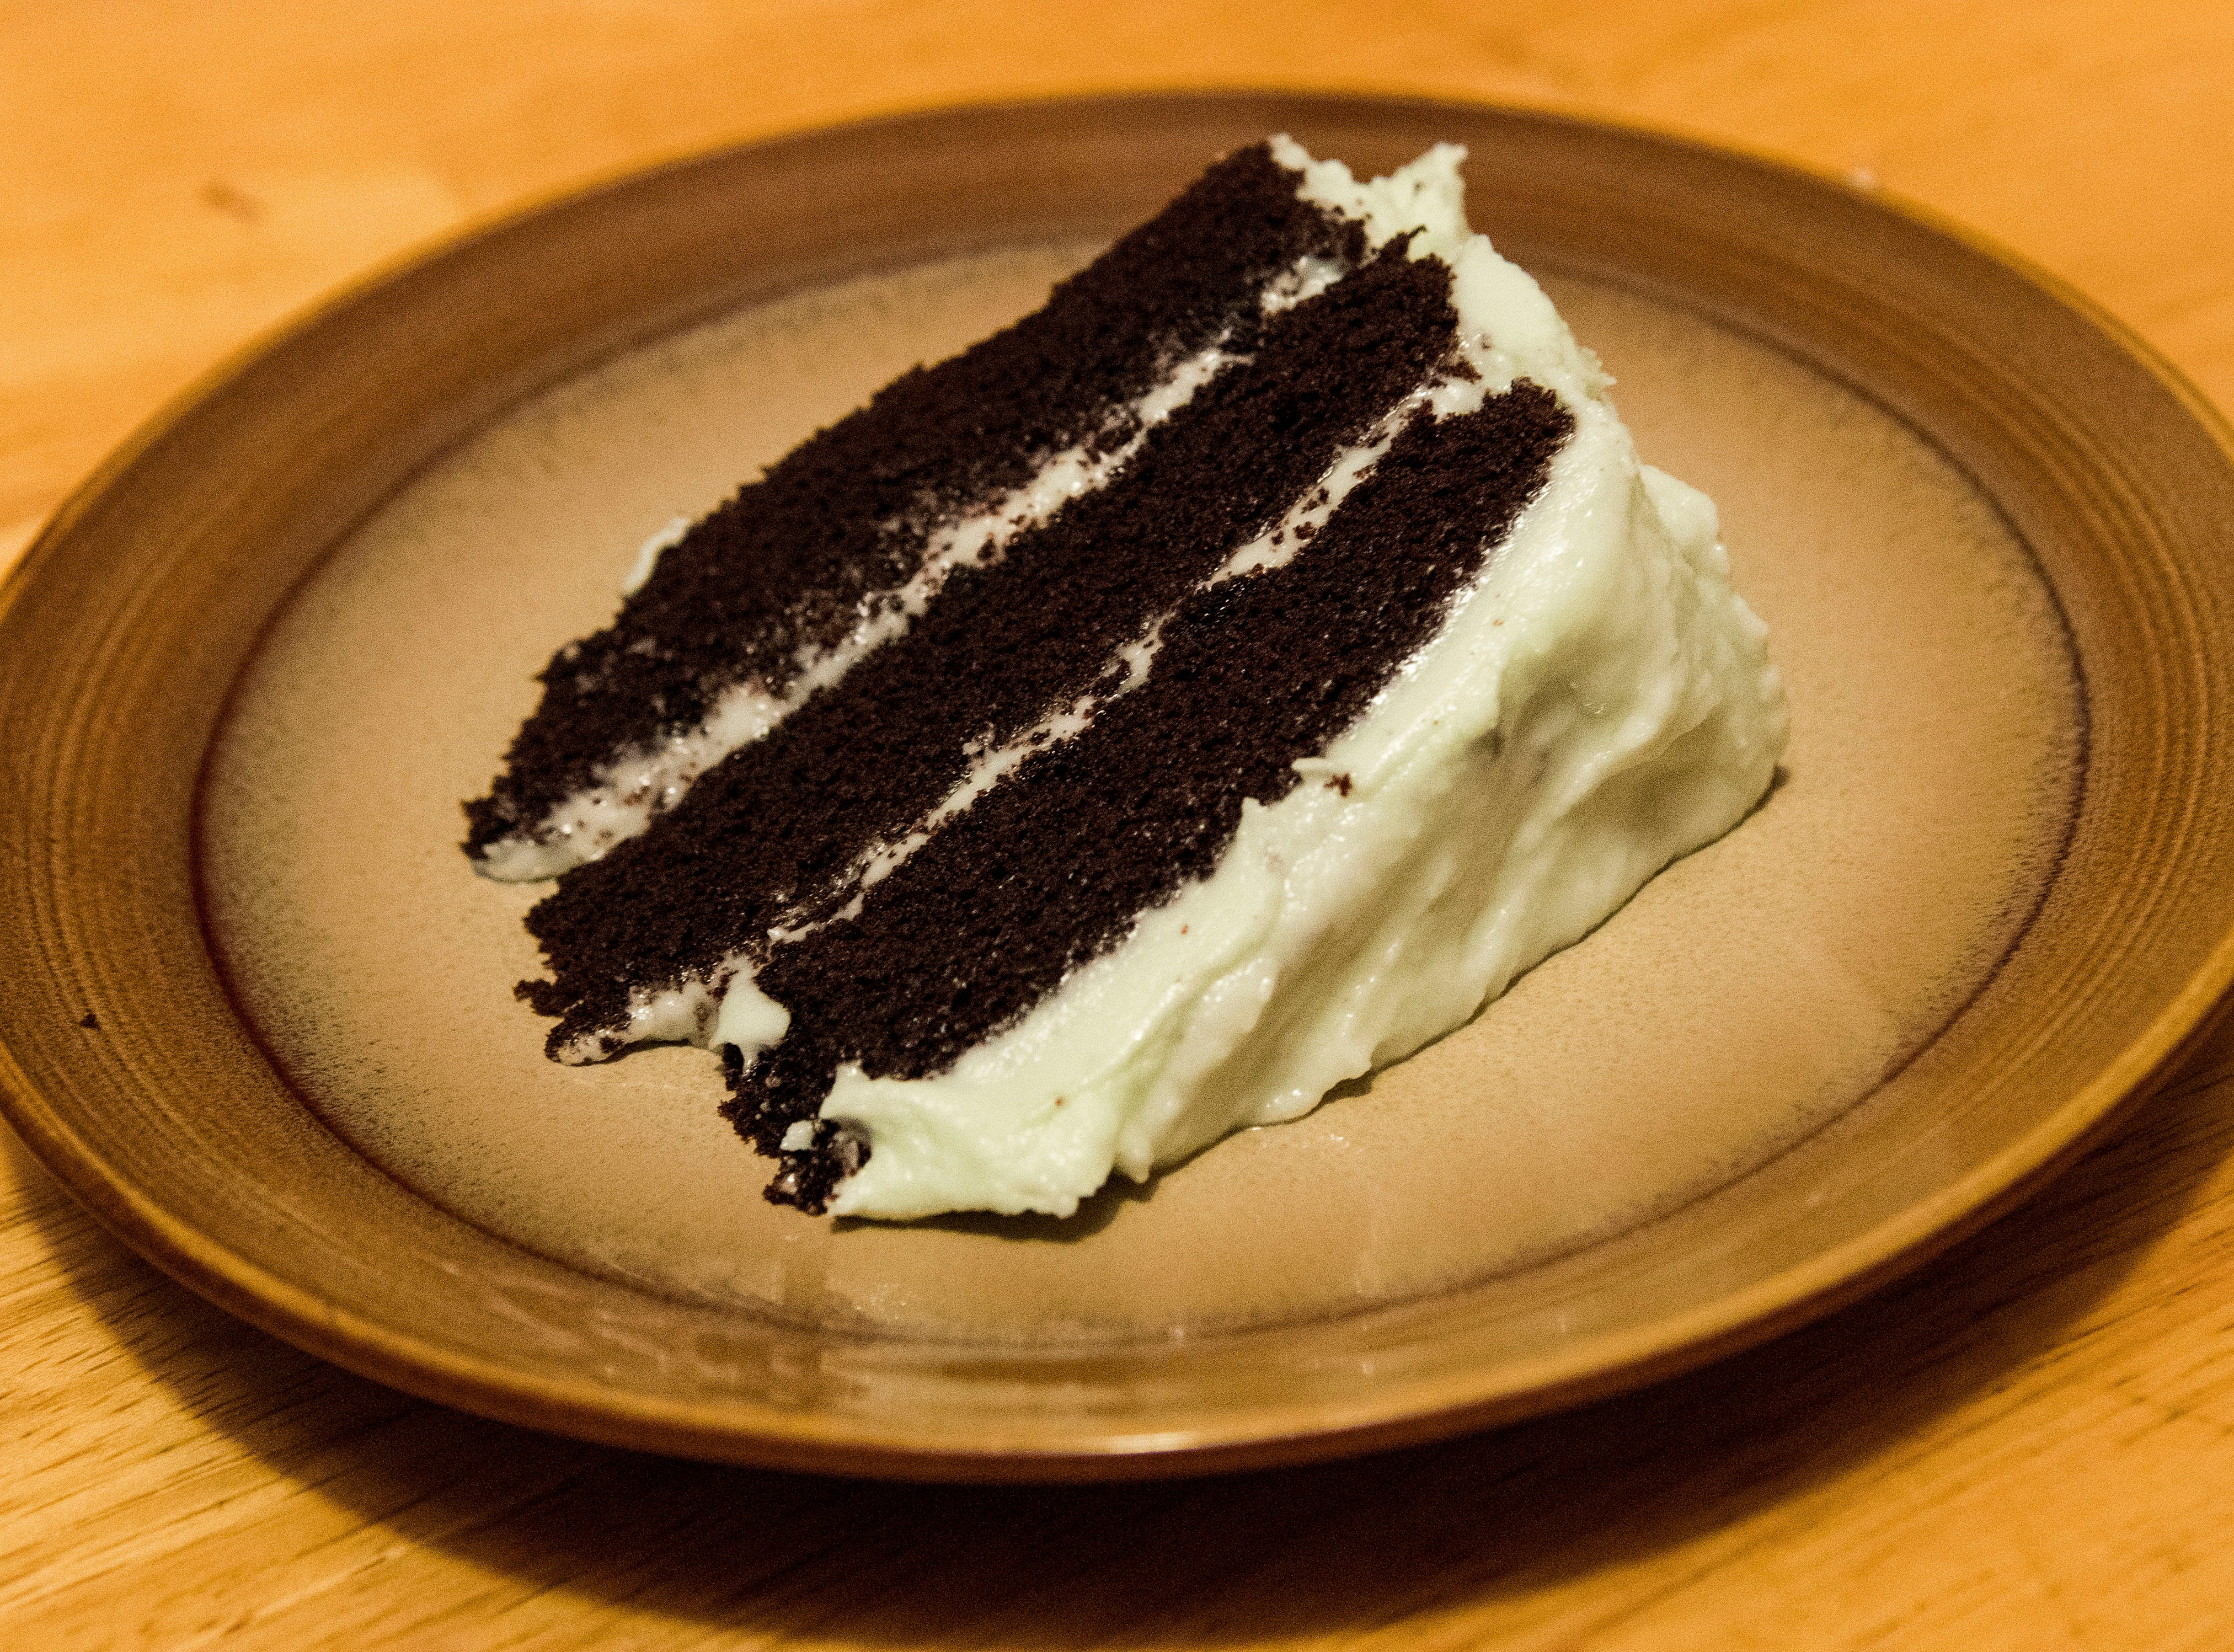 Gluten-free and lactose-free mint choco cake with vegan frosting.